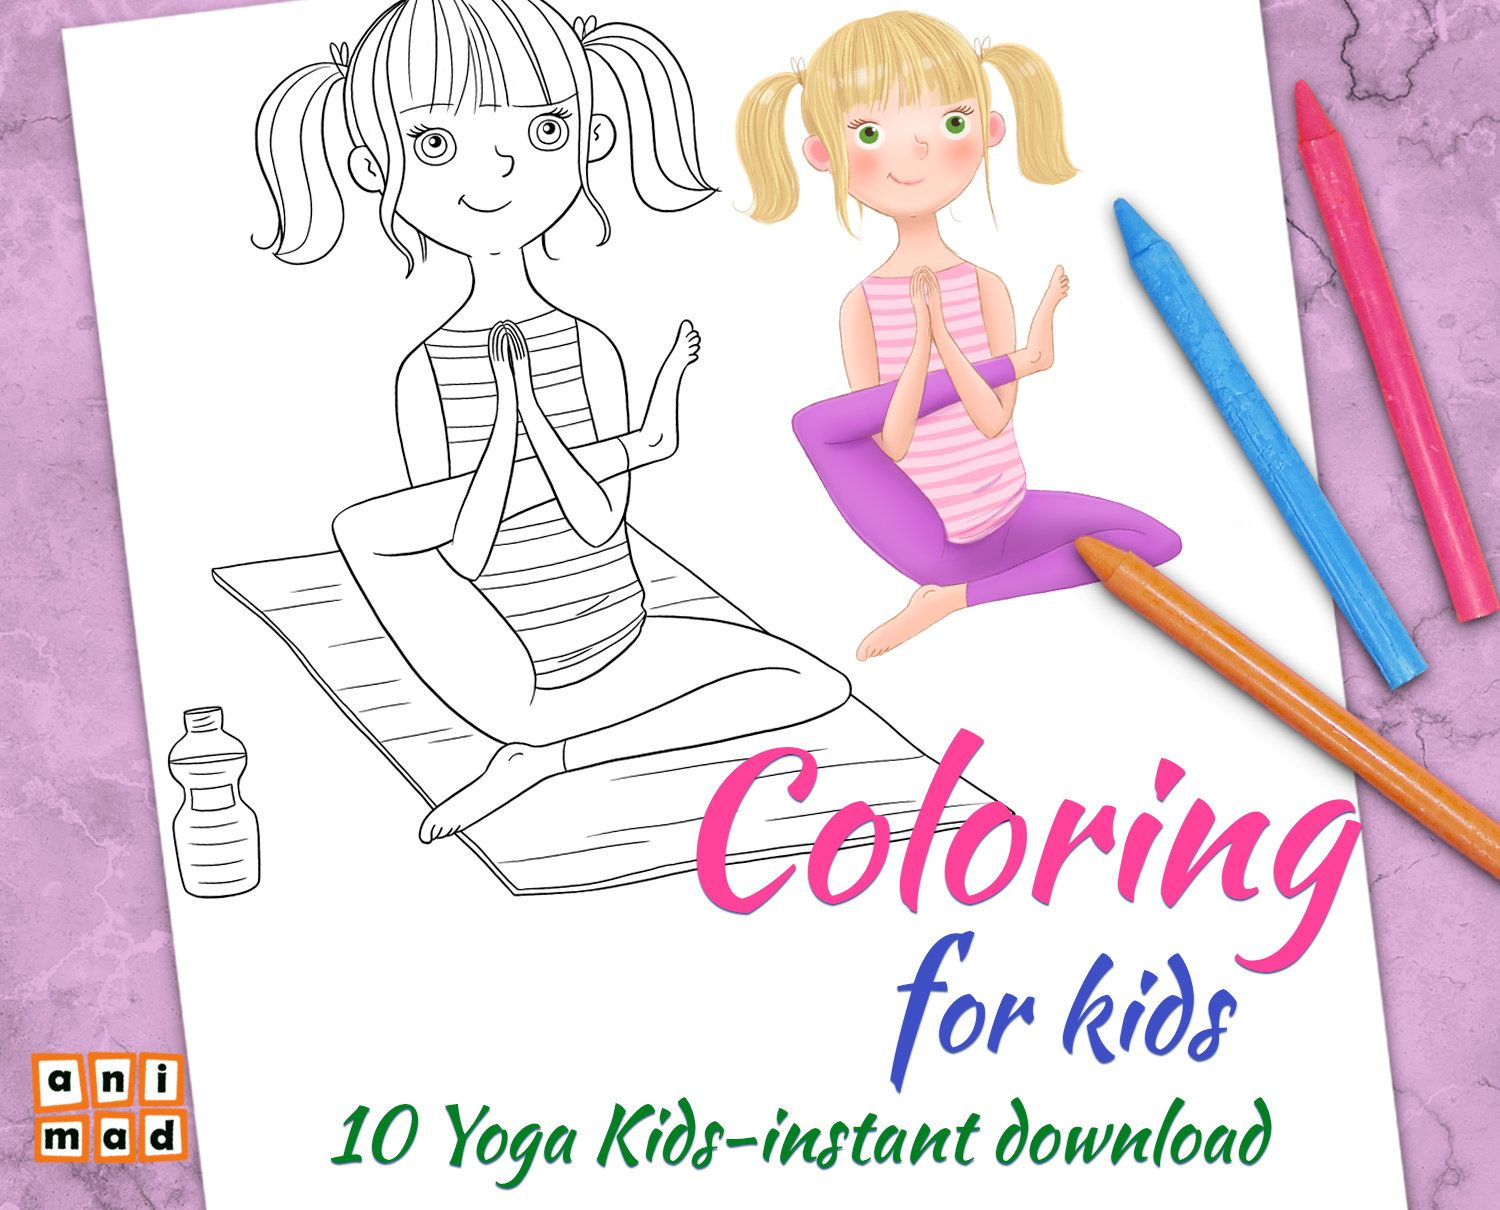 Coloring Pages For Kids 10 Yoga Kids Coloring Poses Instant Etsy Coloring Pages For Kids Yoga For Kids Kids Clipart [ 1210 x 1500 Pixel ]